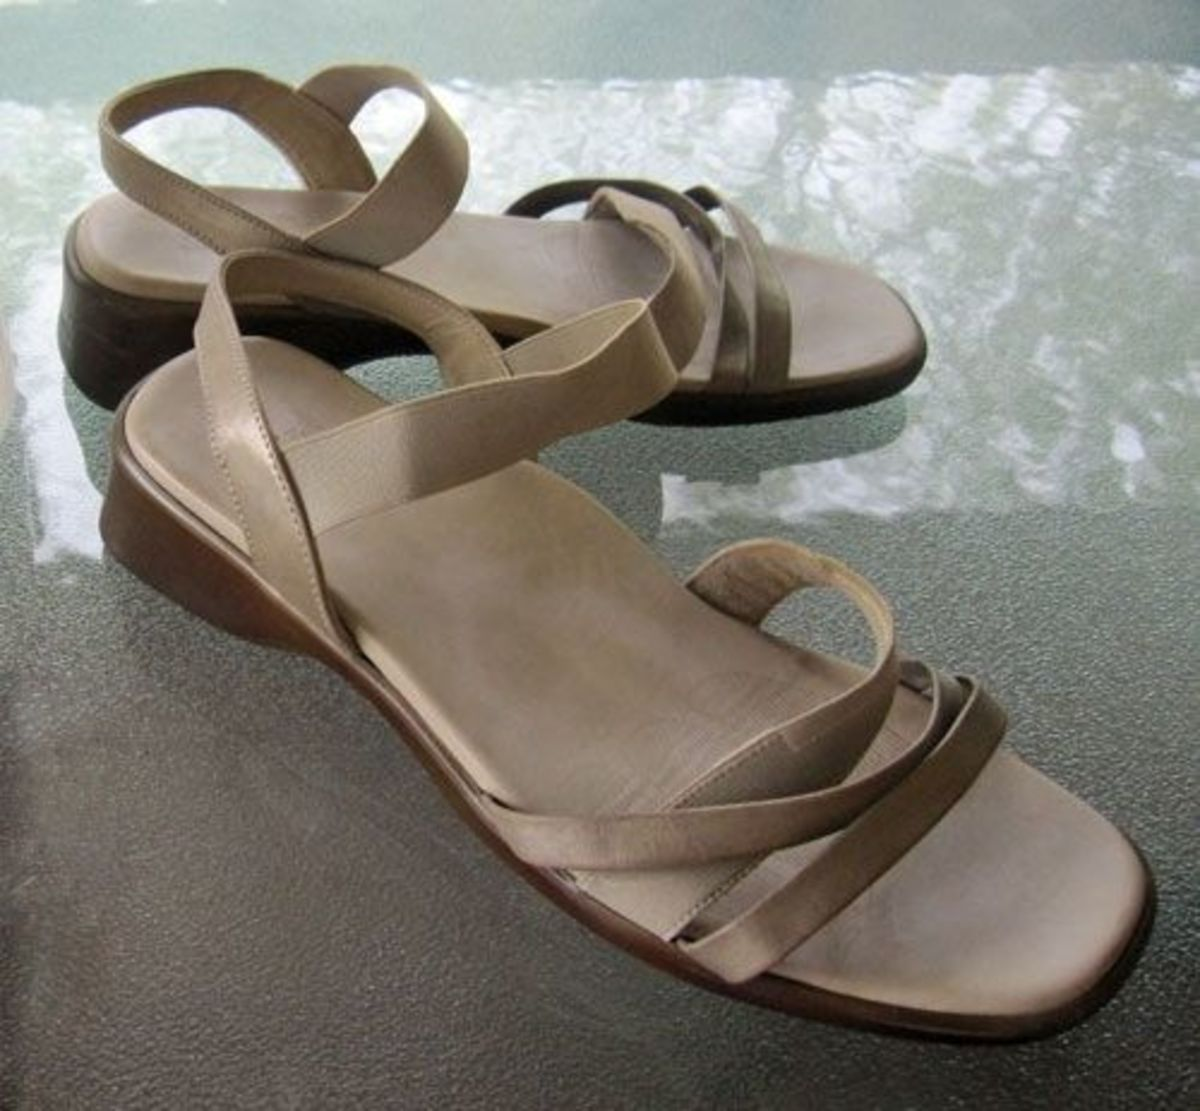 Old beige leather comfort sandals prior to being painted and embellished